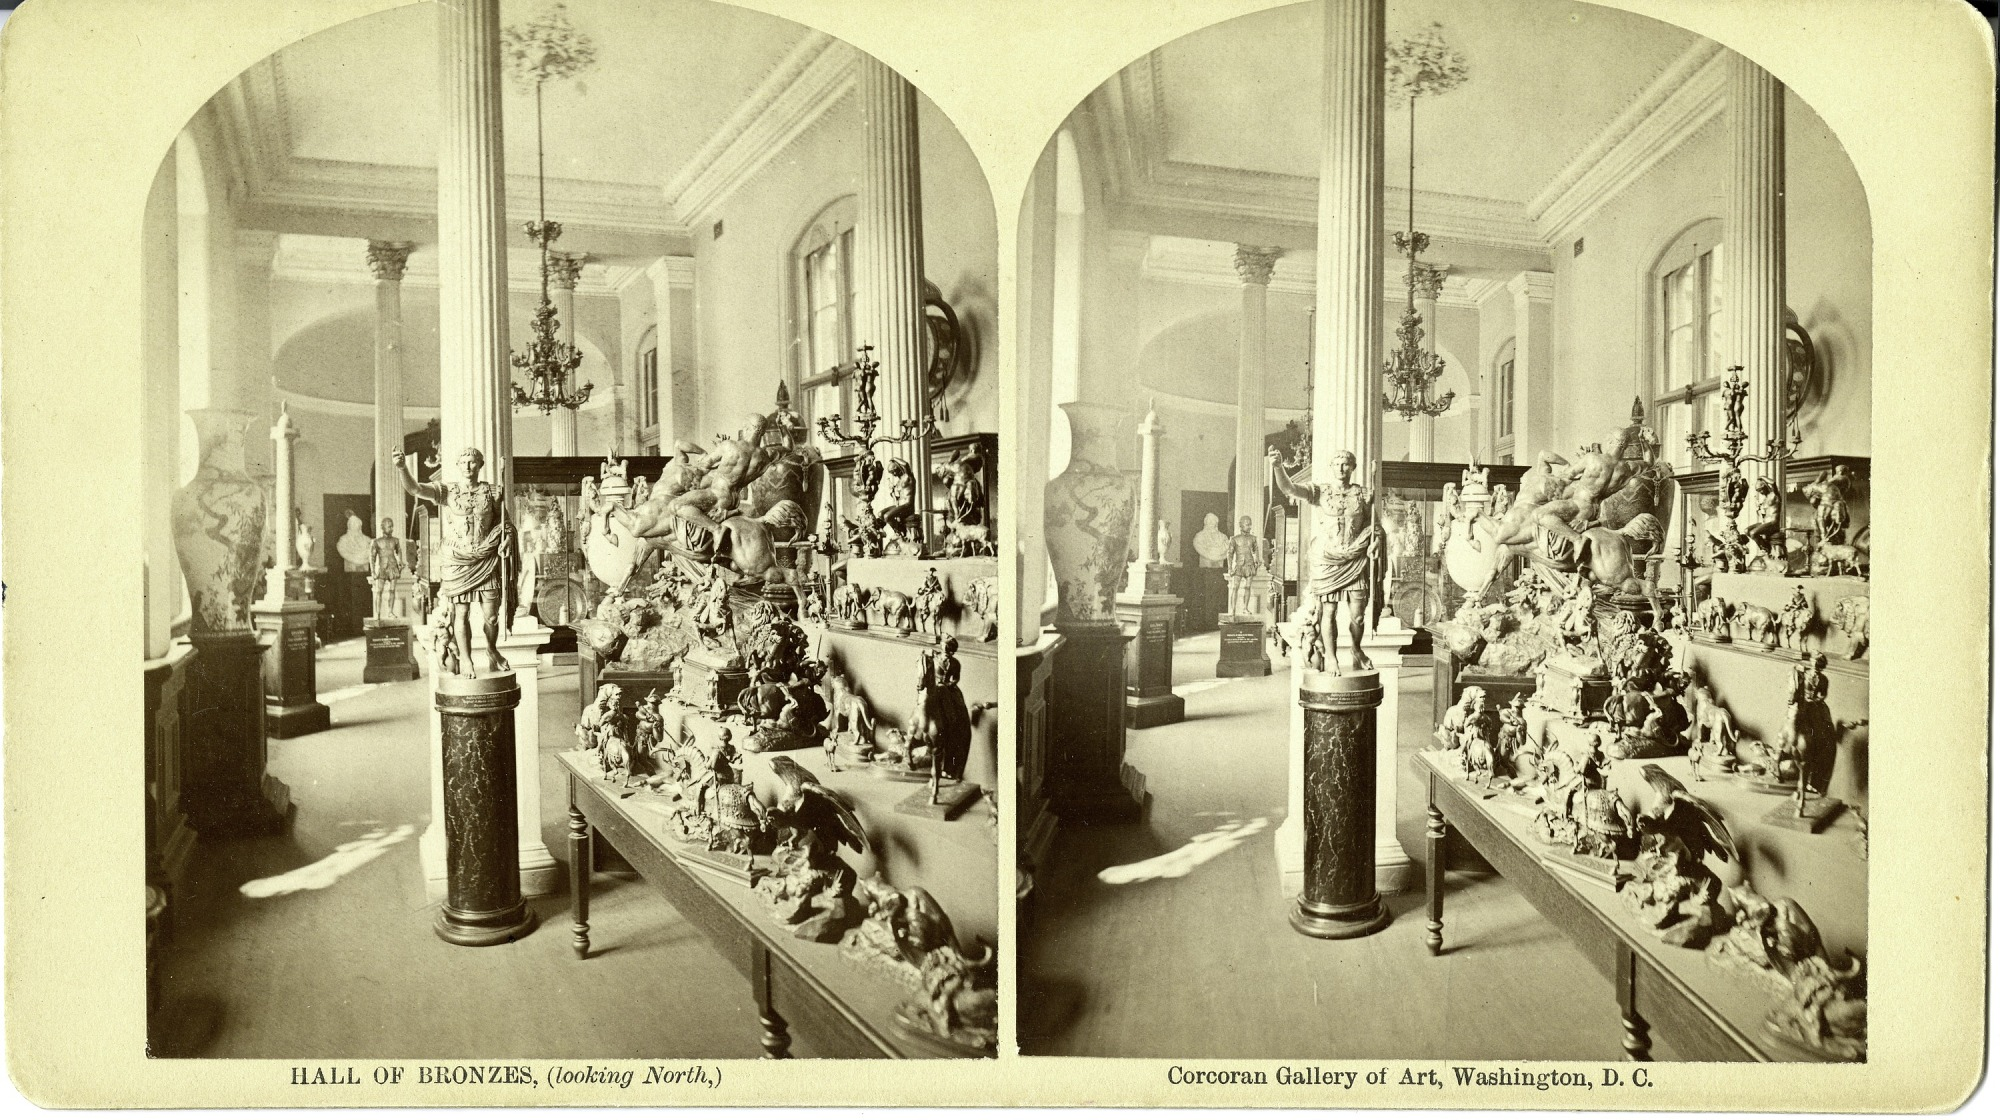 Hall of Bronzes, Interior of the Corcoran Gallery of Art, 19th Century, by Unknown, circa 1875, Smithsonian Archives - History Div, SIA2011-1139.